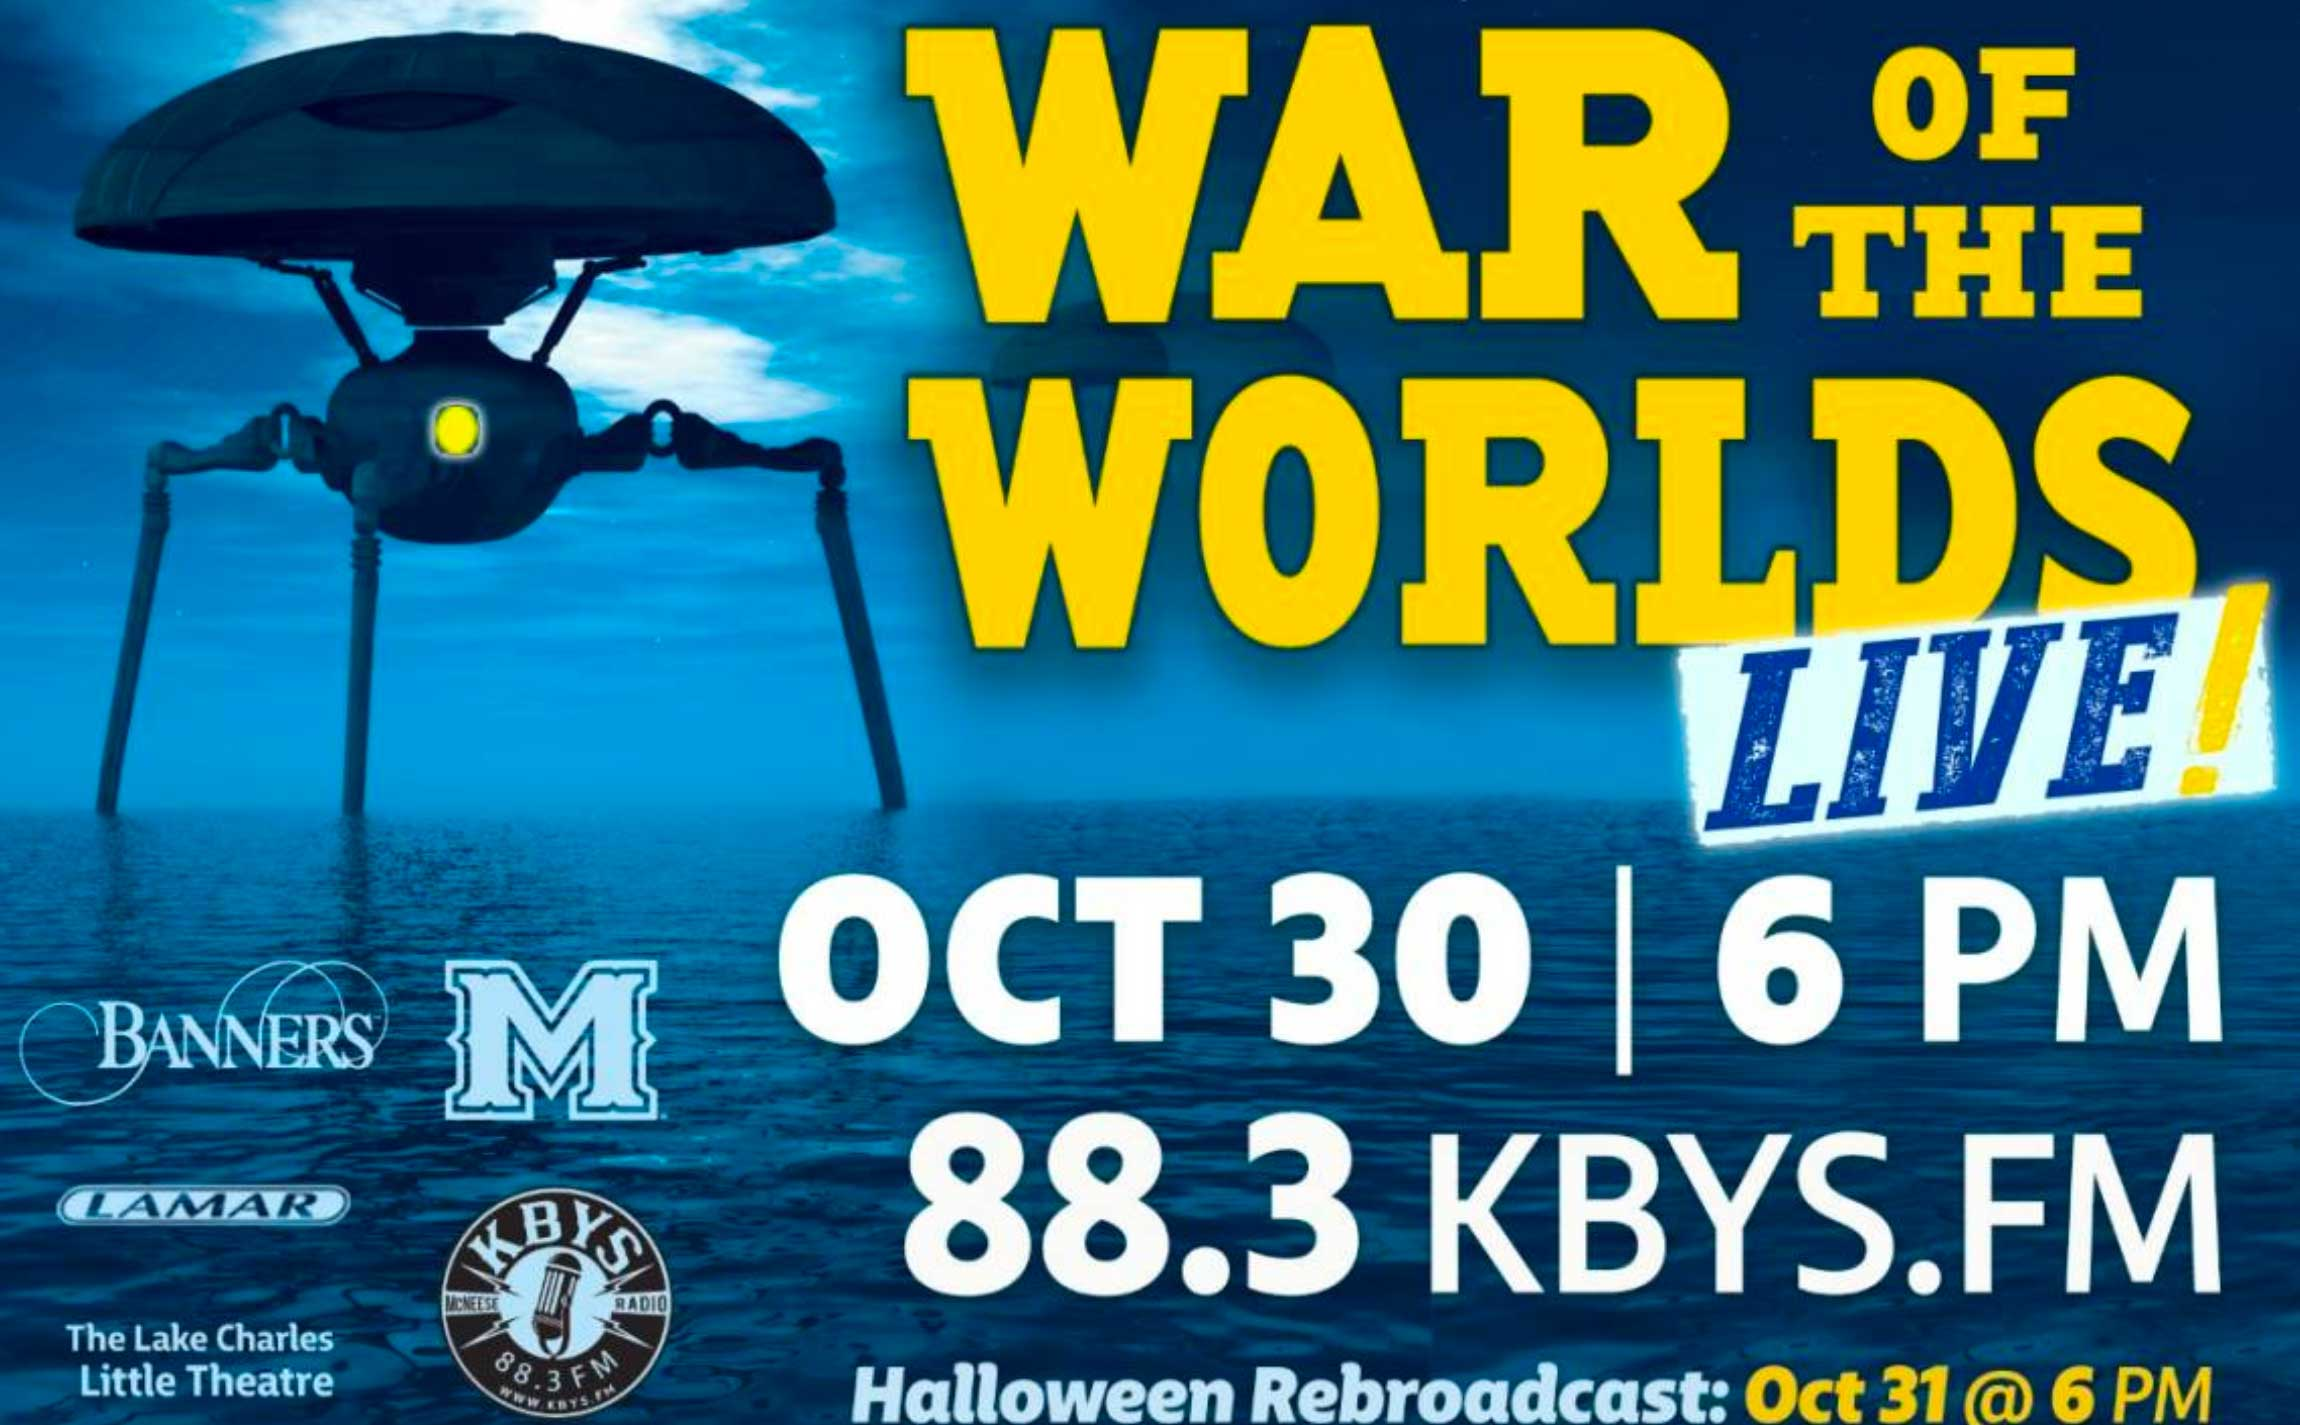 War of the worlds advertisement